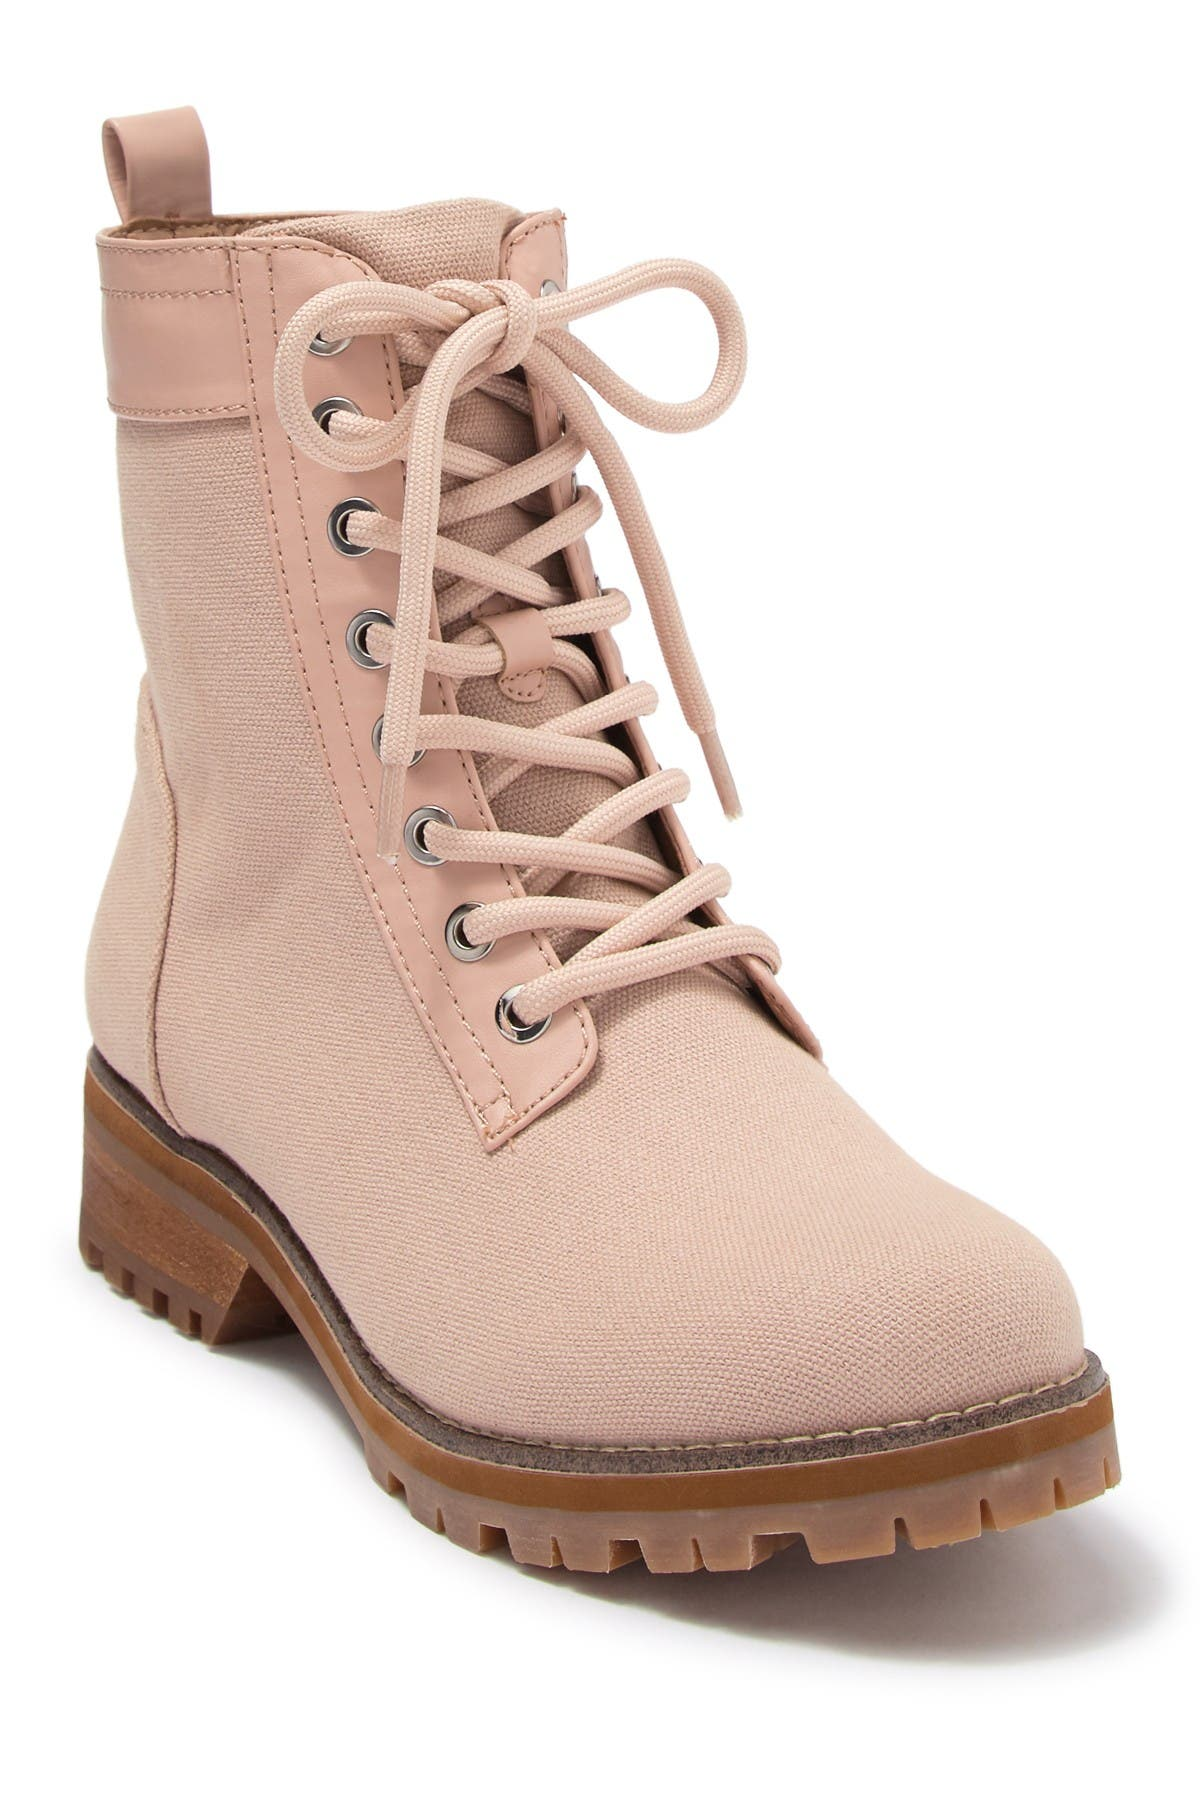 Image of Abound Molli Combat Boot